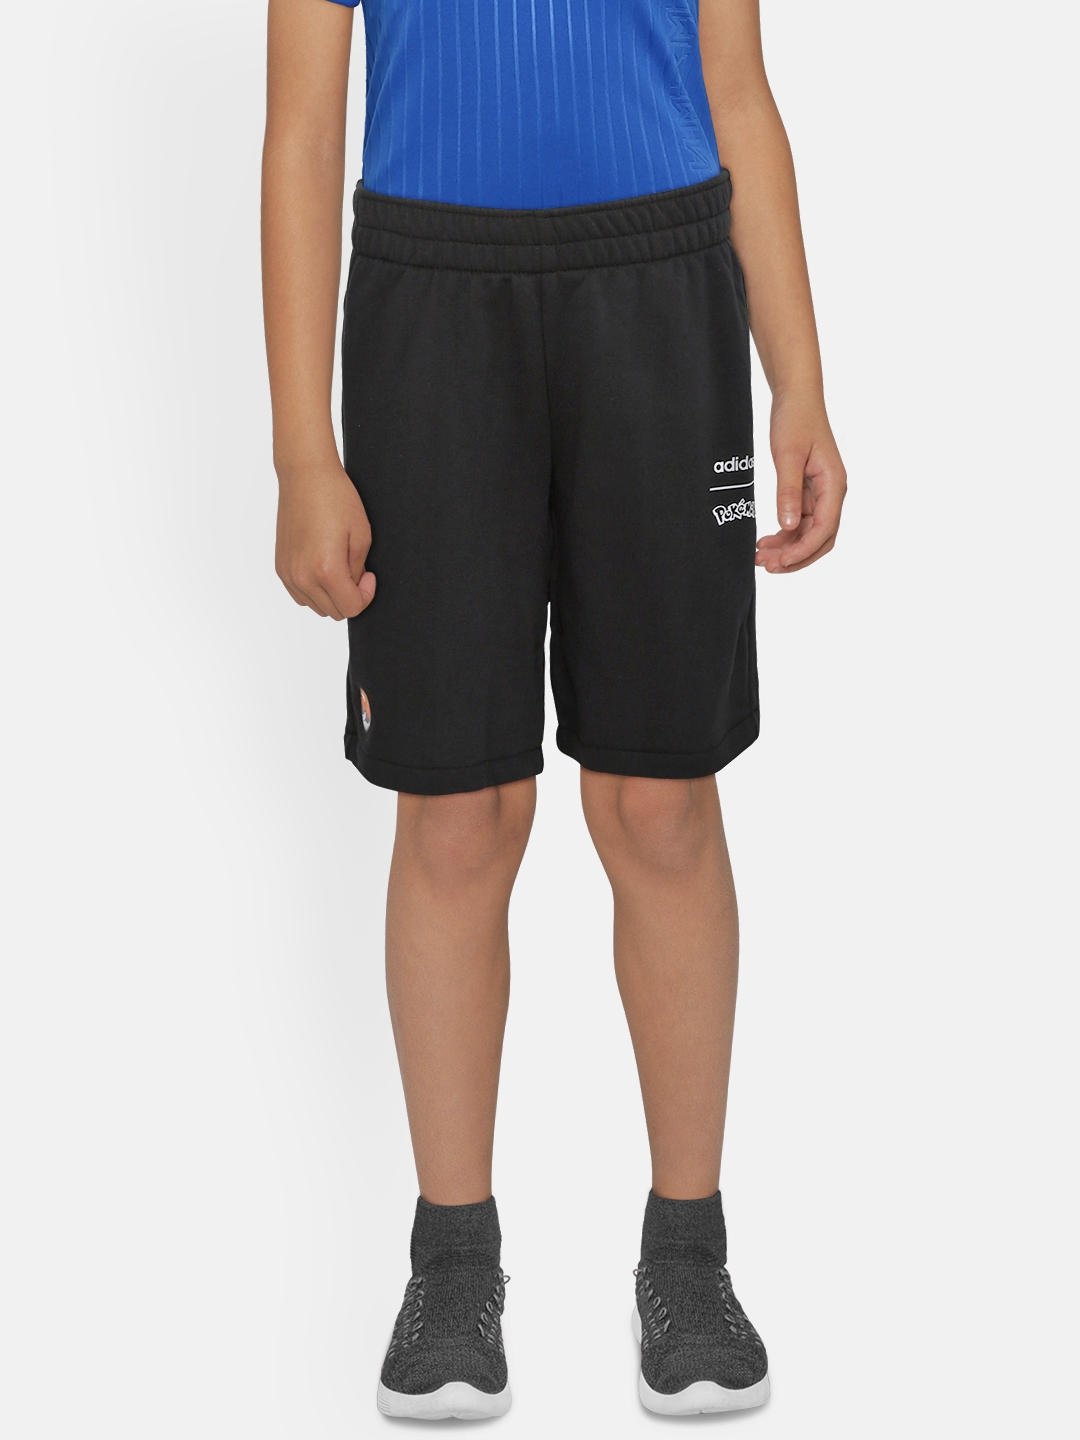 ADIDAS Boys Black Solid Pokemon Shorts